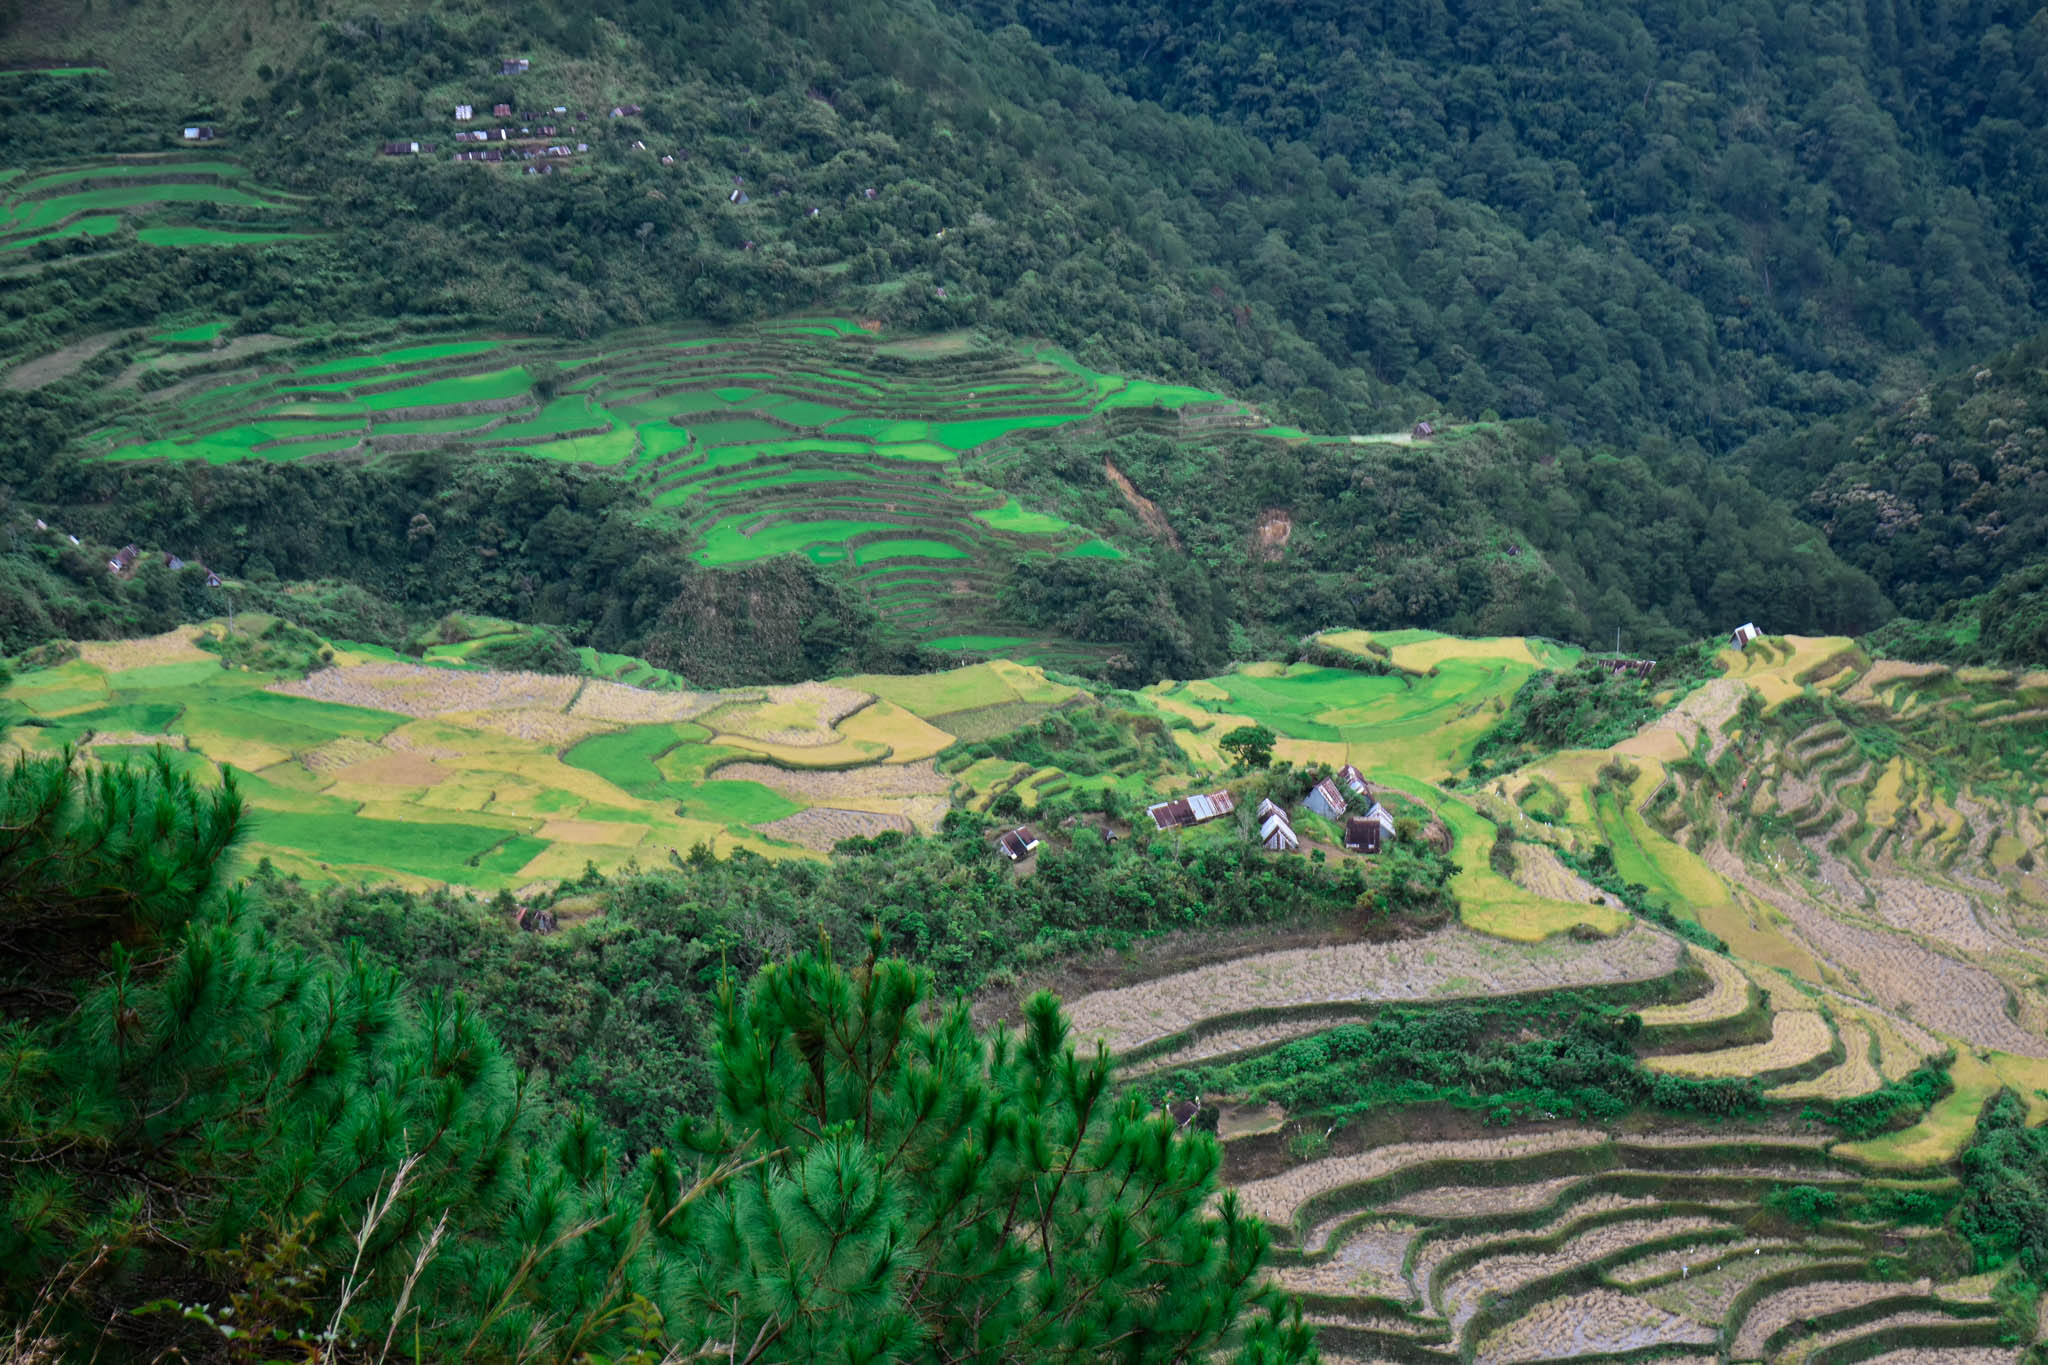 MALIGCONG RICE TERRACES COVER 5 (1 of 1)